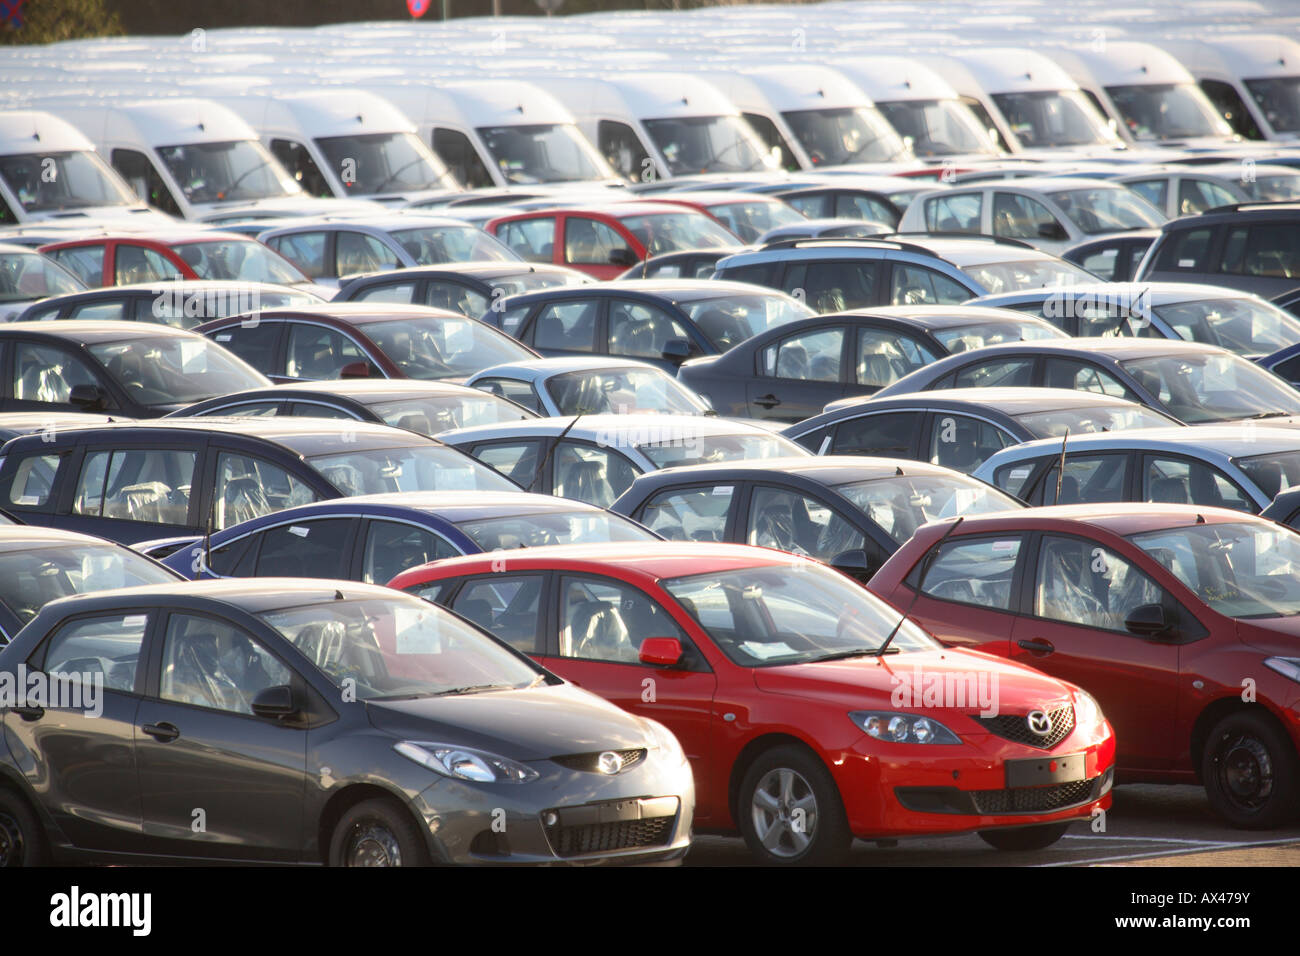 rows of brand new cars and vans in a car lot awaiting distribution